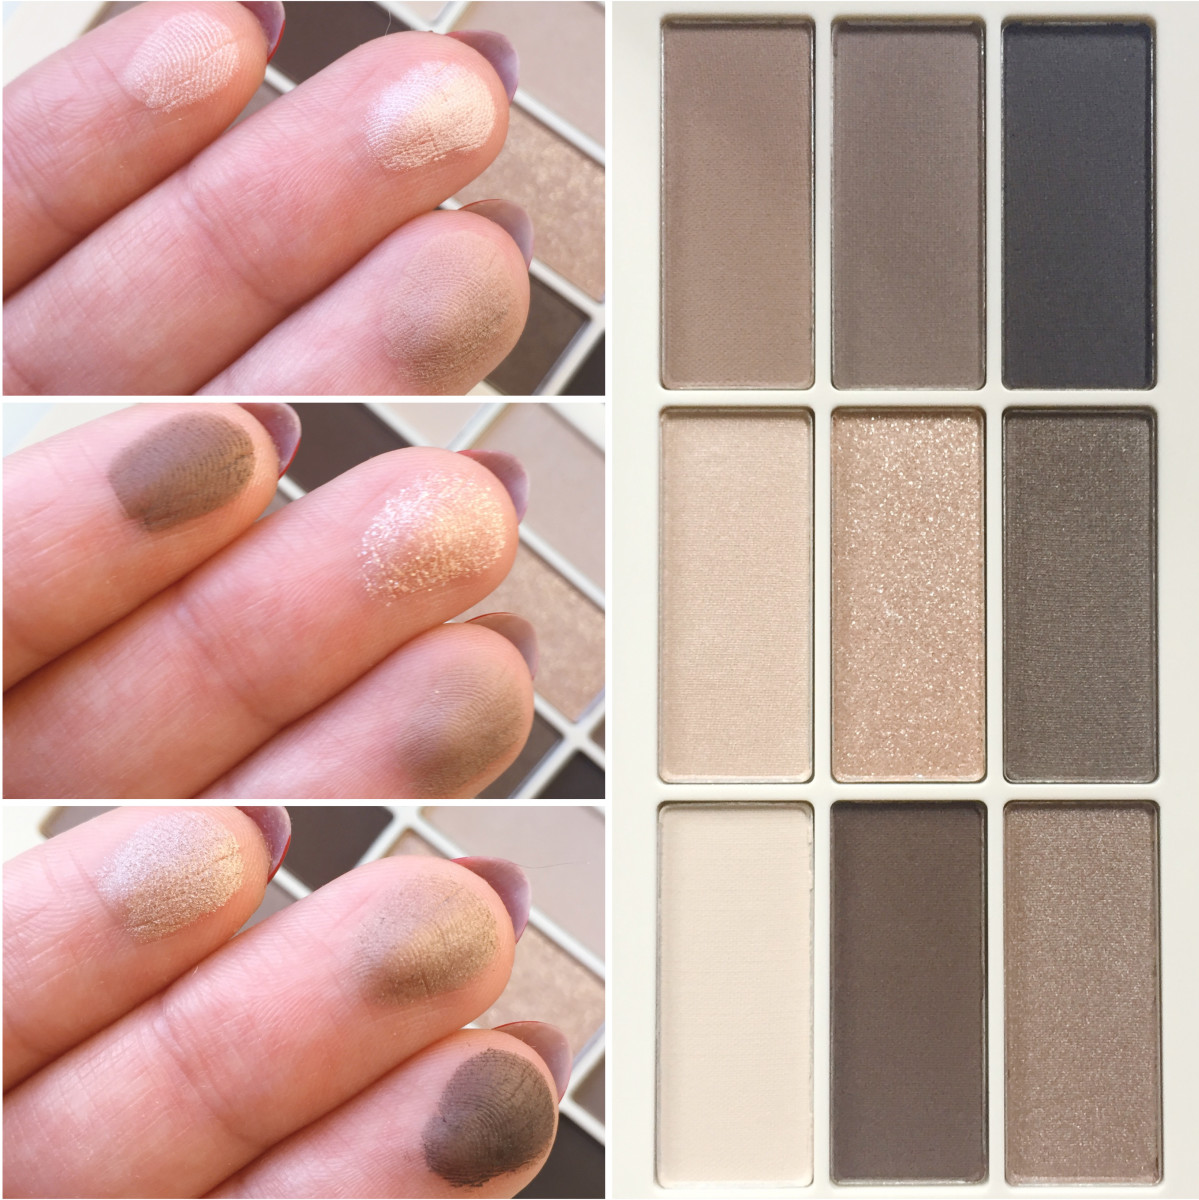 HM Eye Colour Palette in Smoky Nudes (swatches)